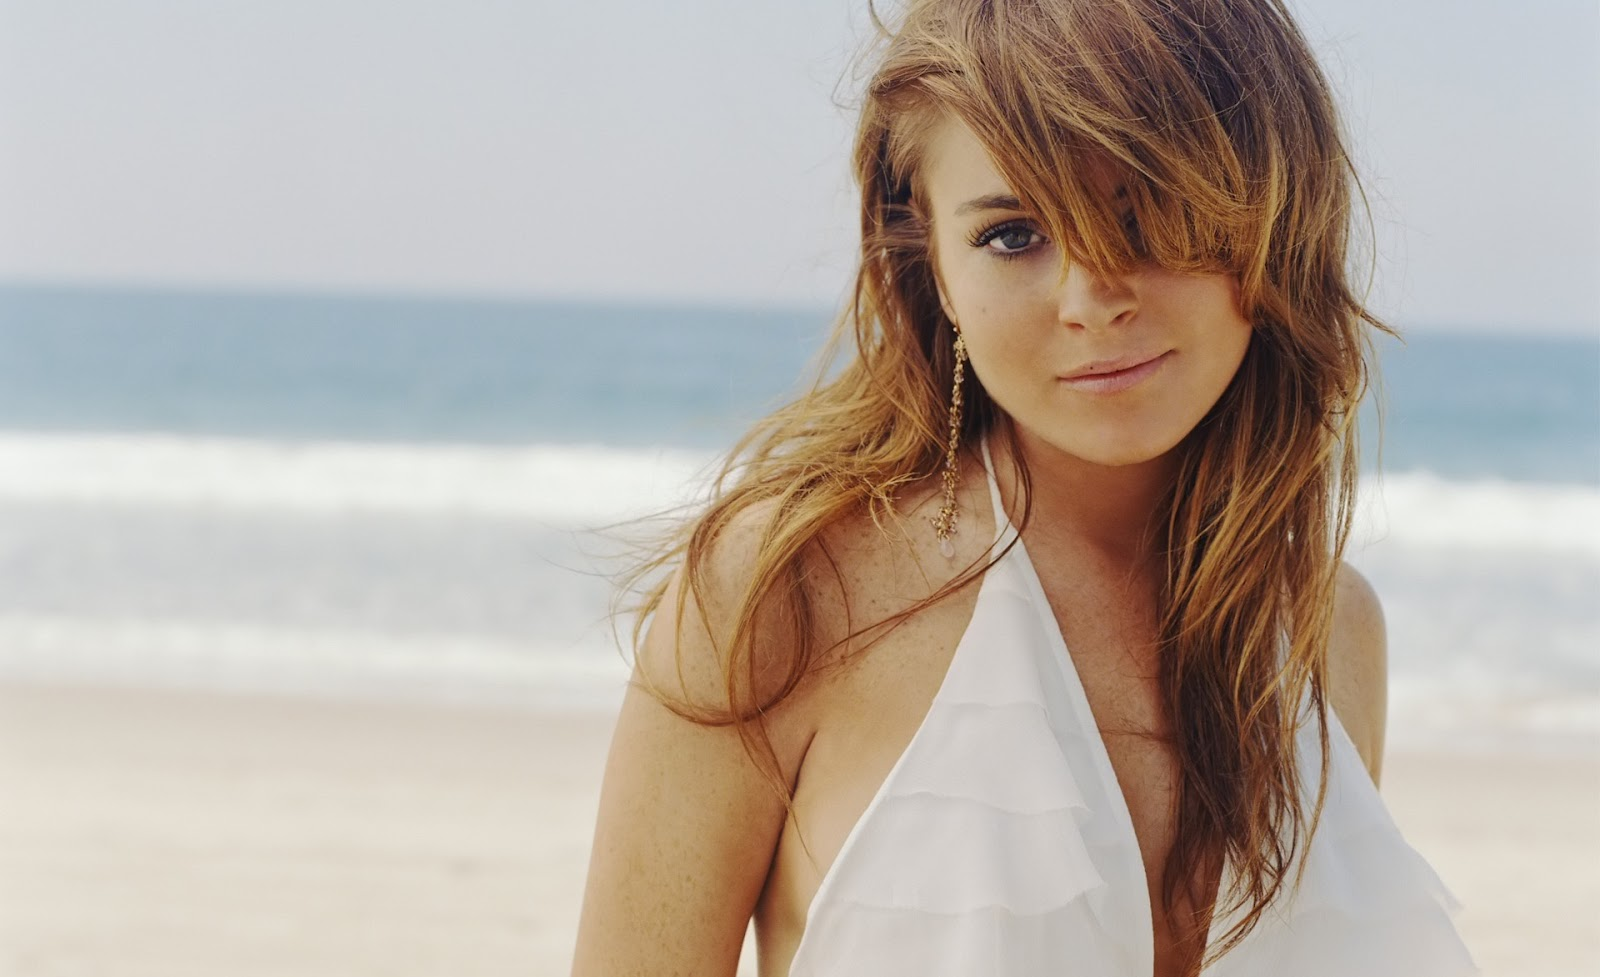 Lindsay Lohan on Beach in white bikni